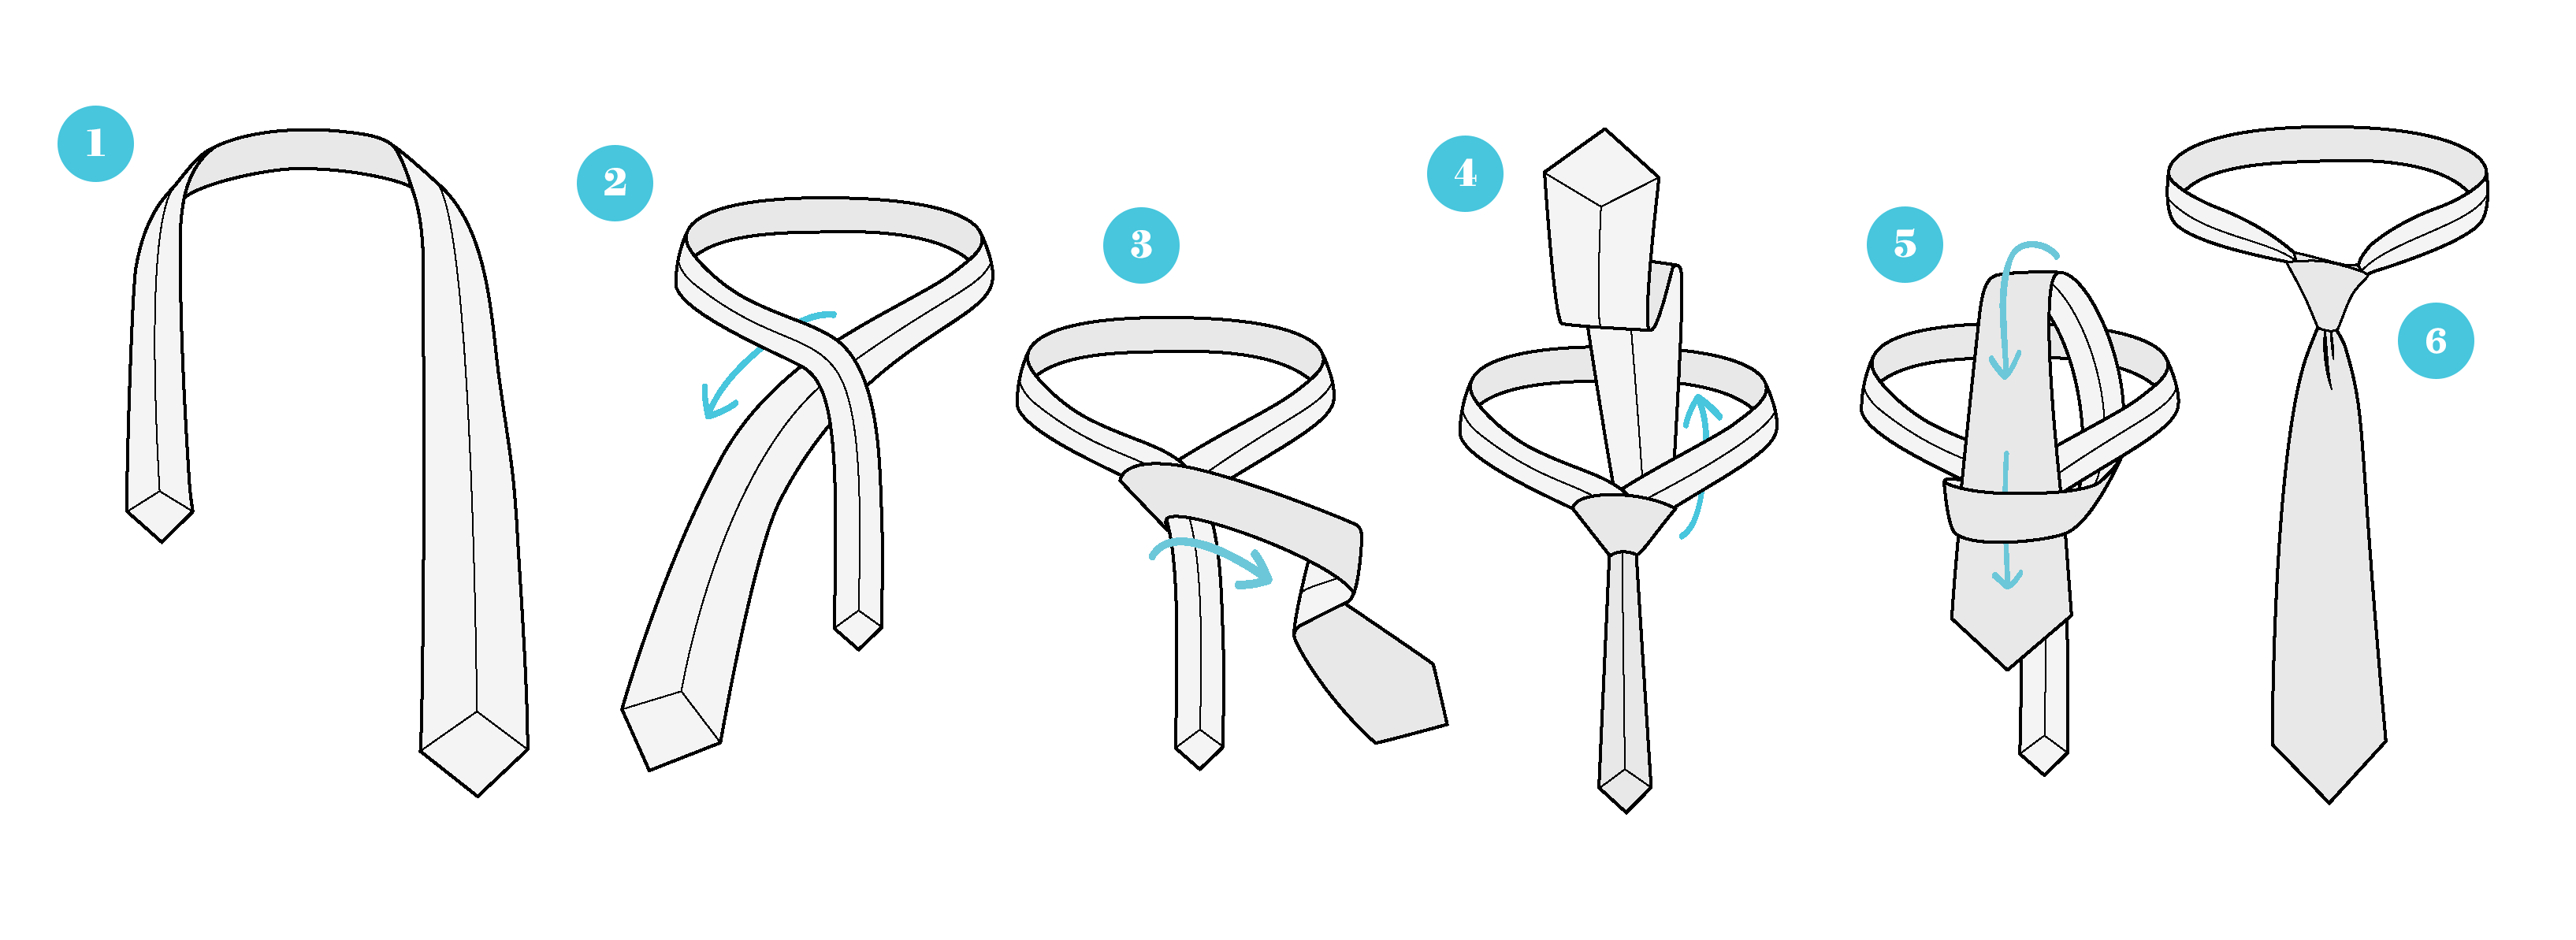 the simple knot for ties